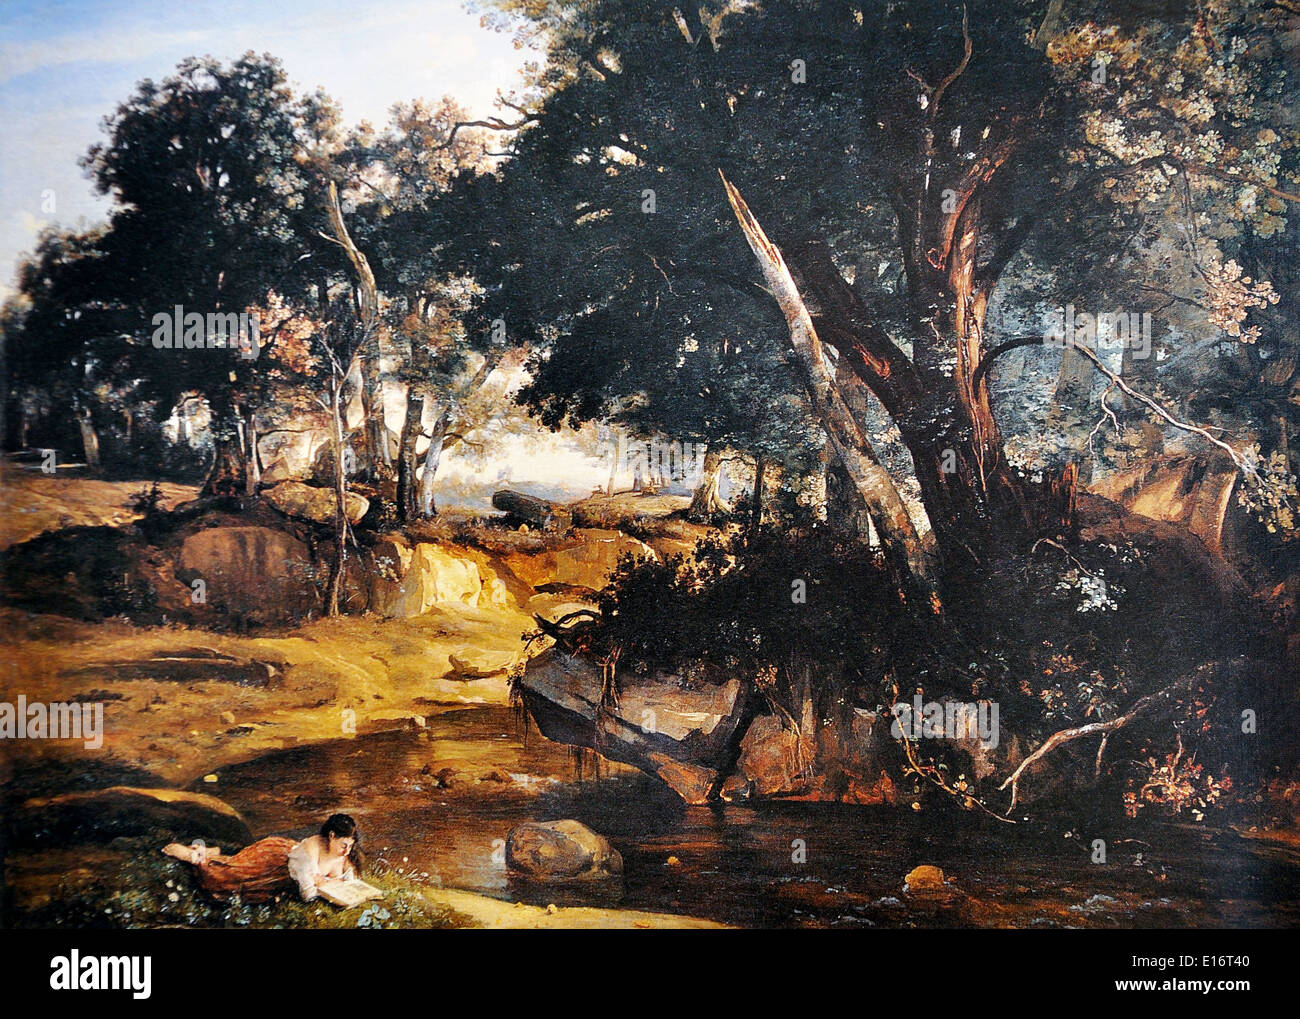 Forest of Fontainebleau by Jean-Baptiste-Camille Corot, 1834 - Stock Image